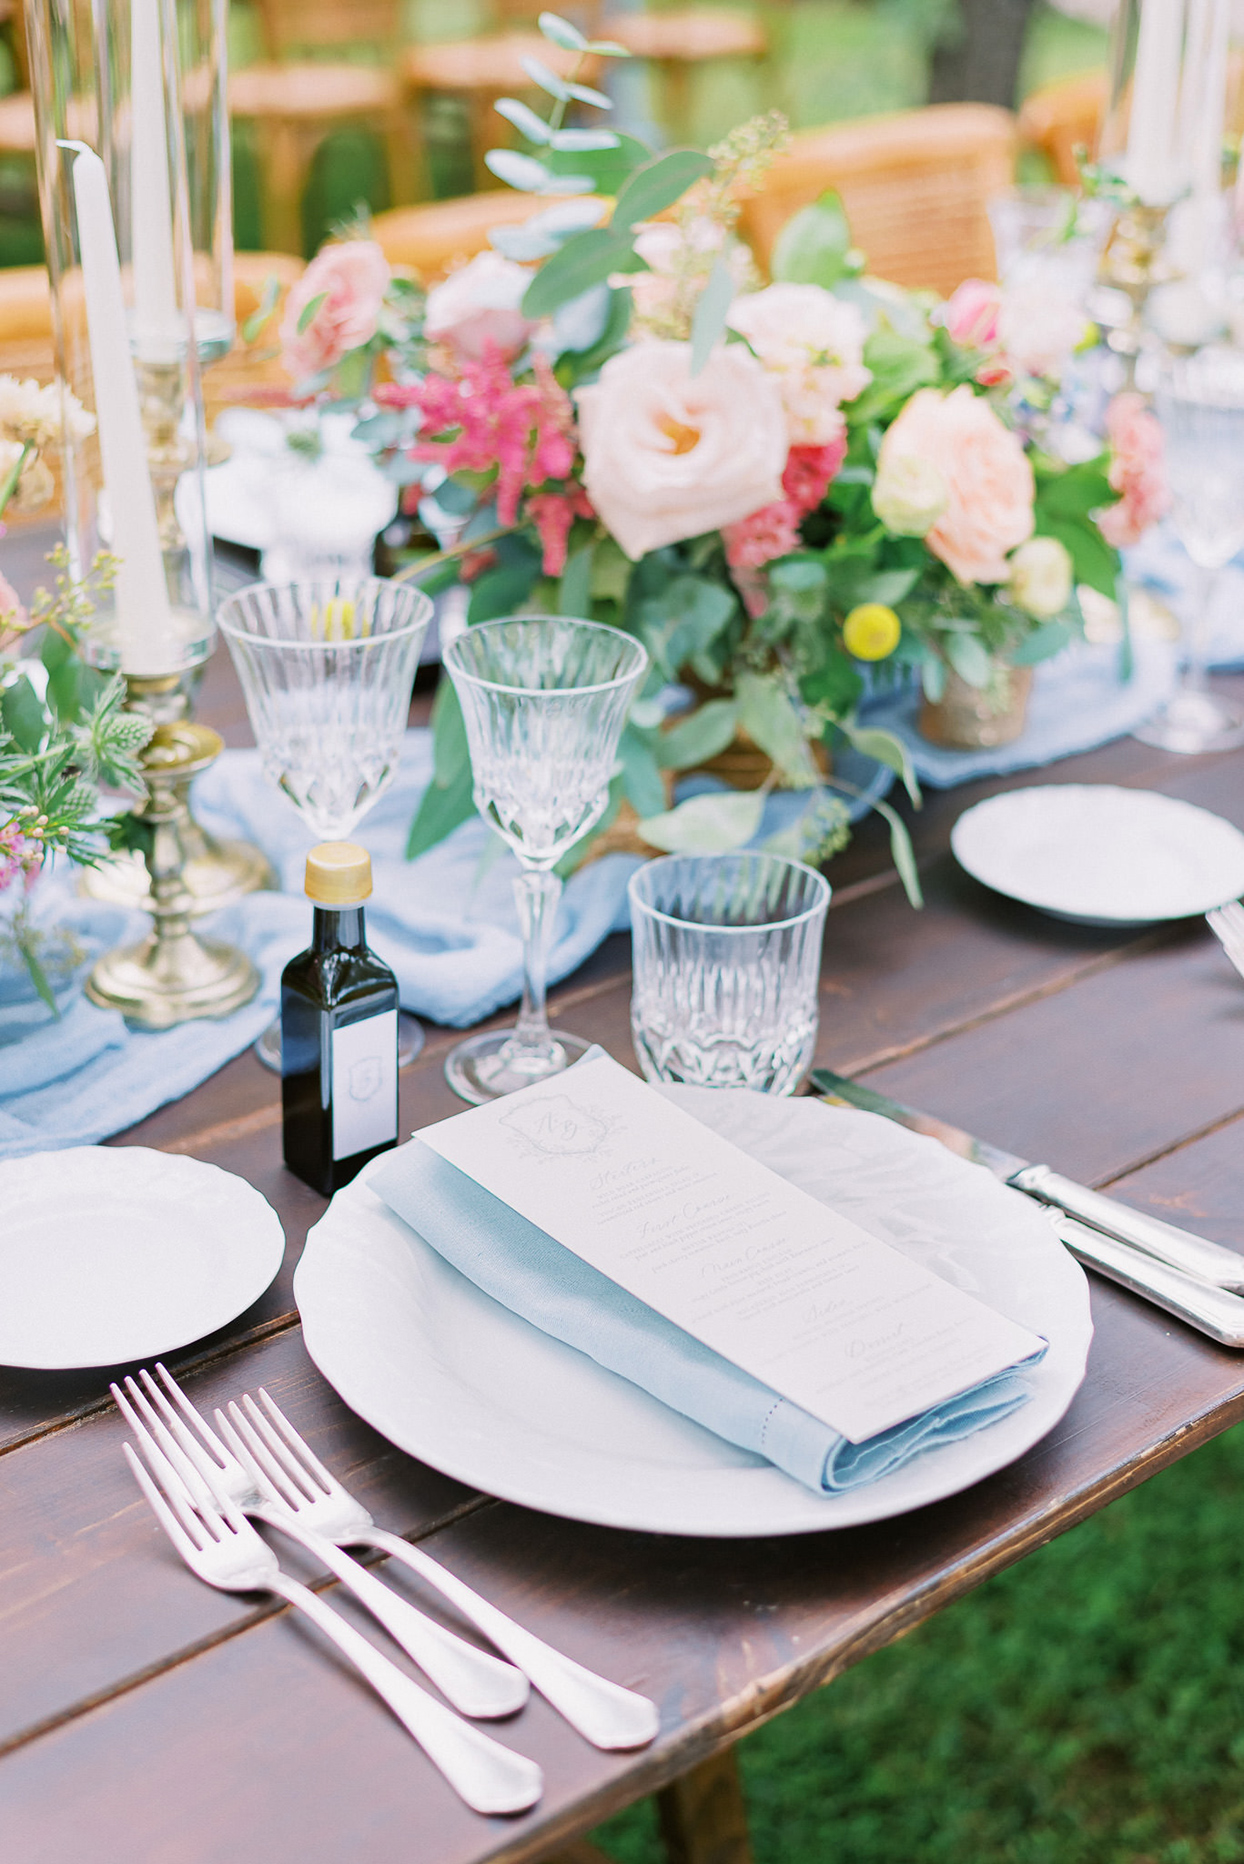 ally brian wedding place setting with menu